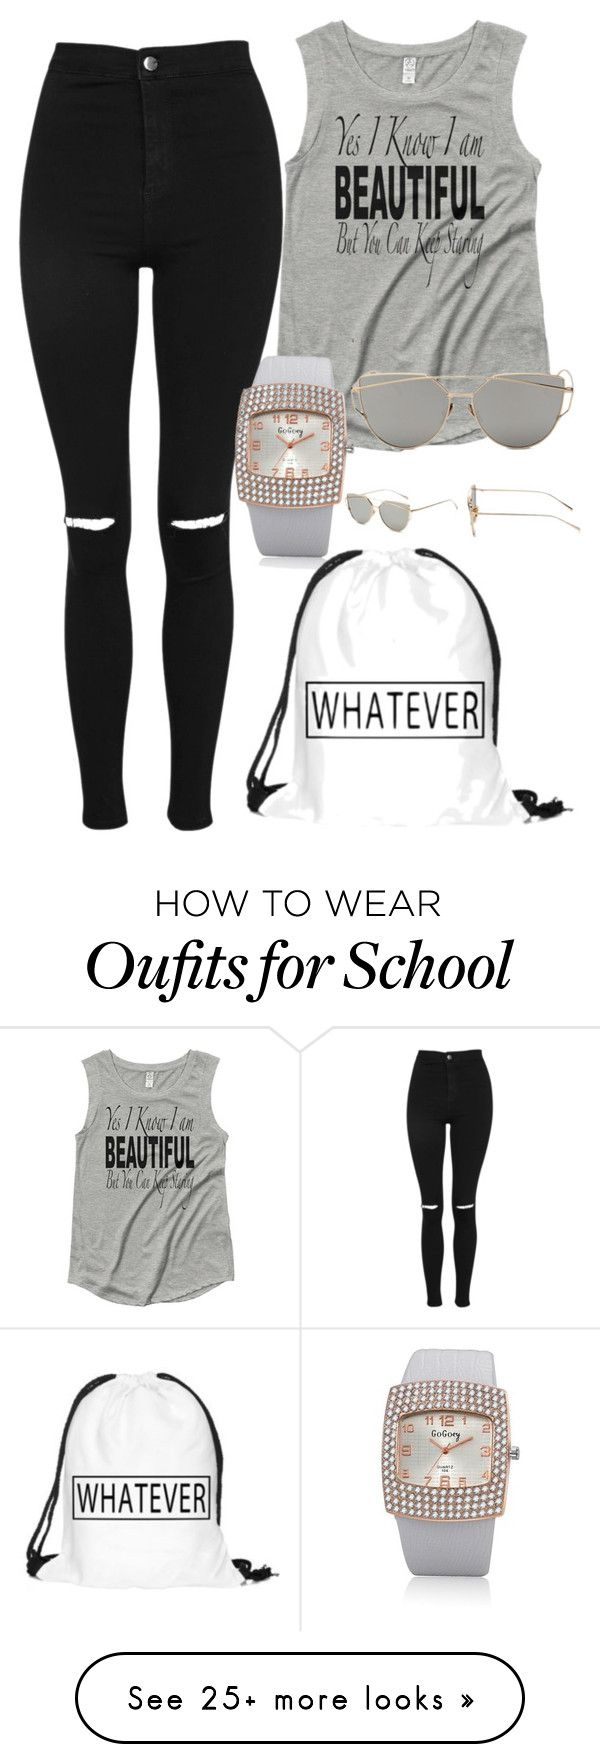 """Whatever I am late anyway watch black band"" by fab-life-939 on Polyvore featuring Topshop"